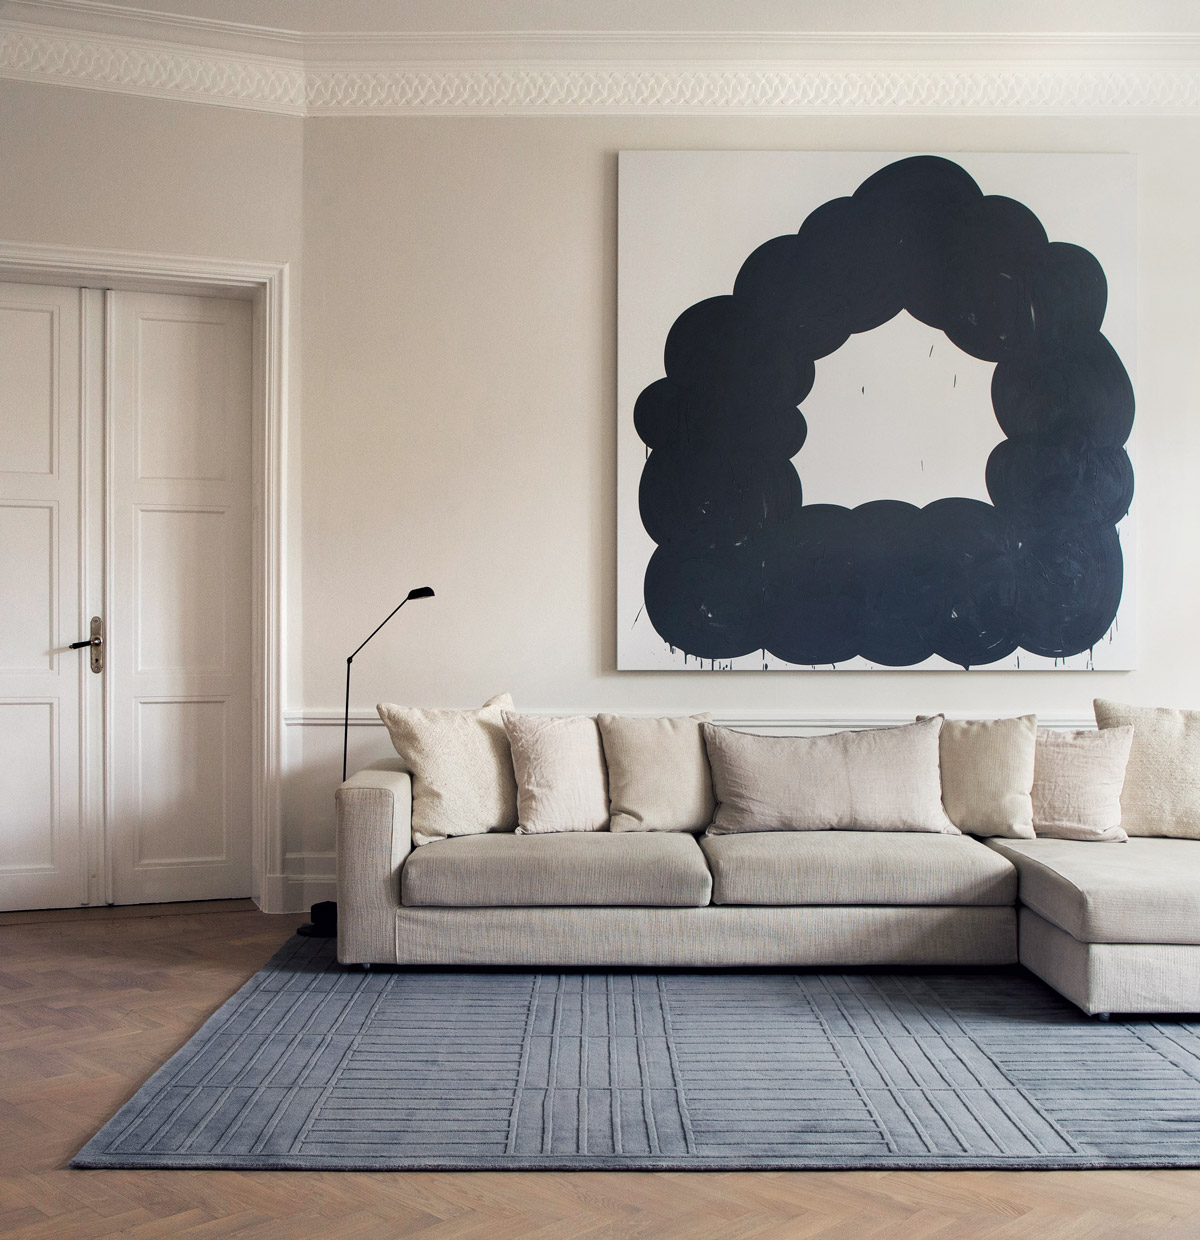 Plush rug Lx 1 in color Gray shown in a bright, beautiful living room.